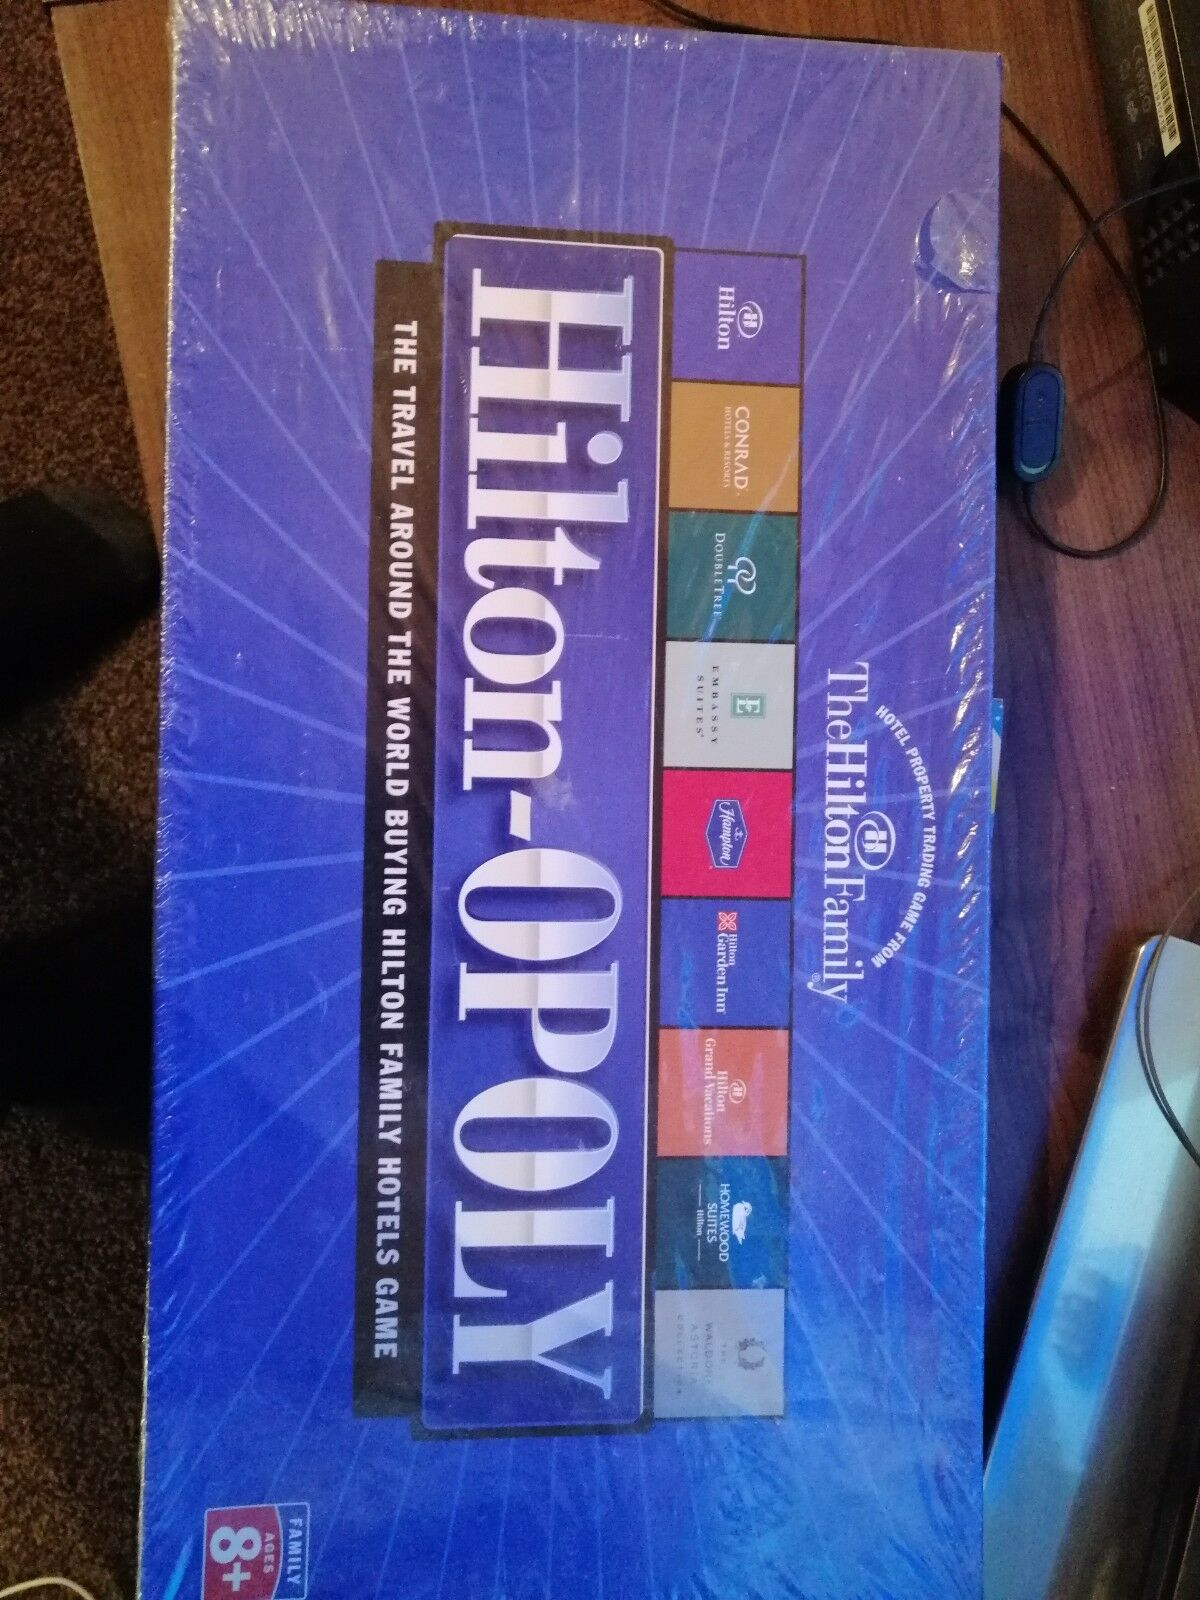 Hiton-opoly very rare, collectors edition brand new sealed